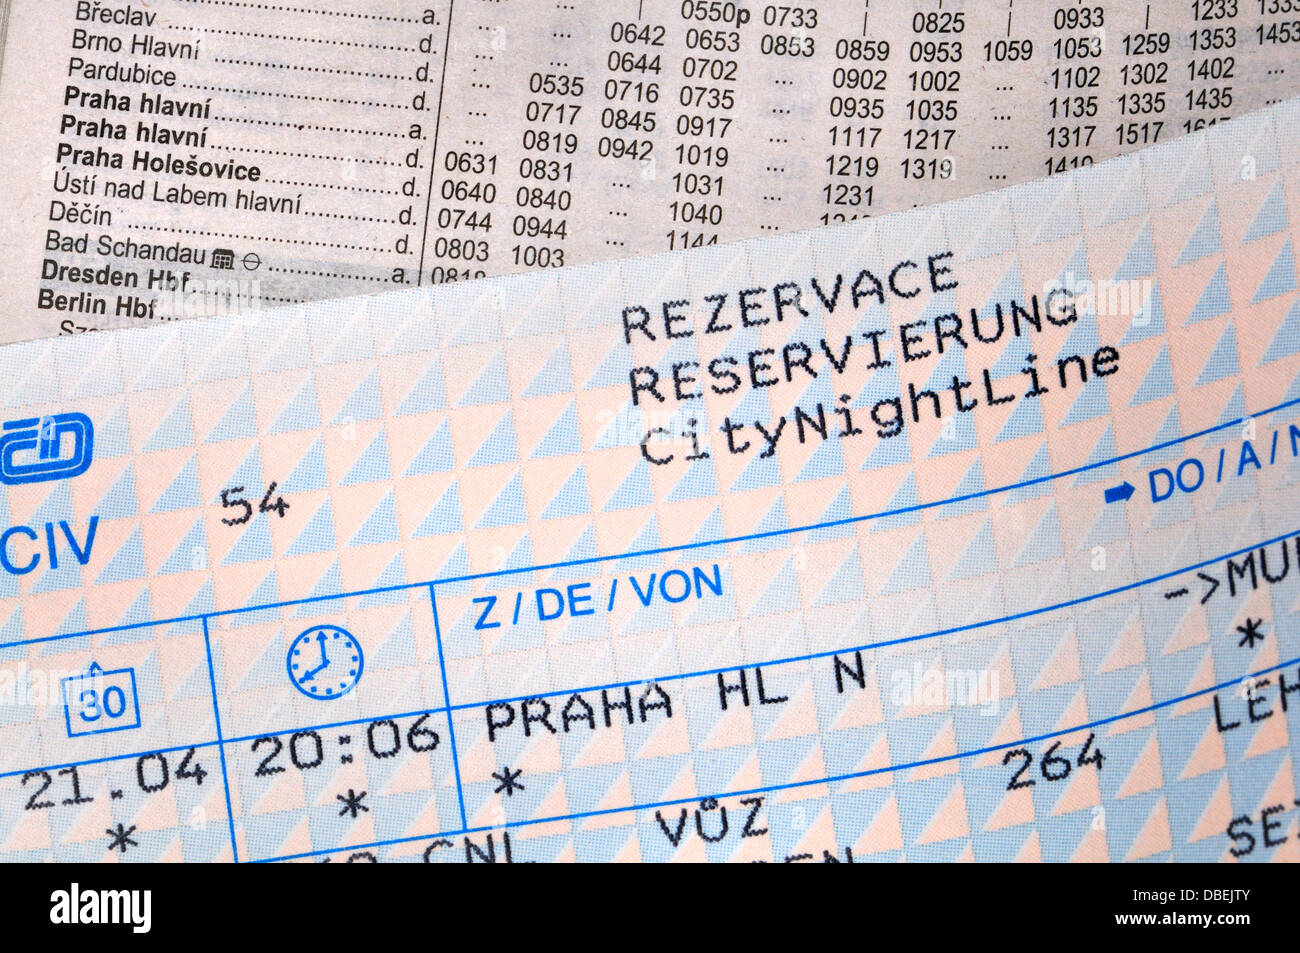 Rail Ticket and Timetable - Prague - Stock Image